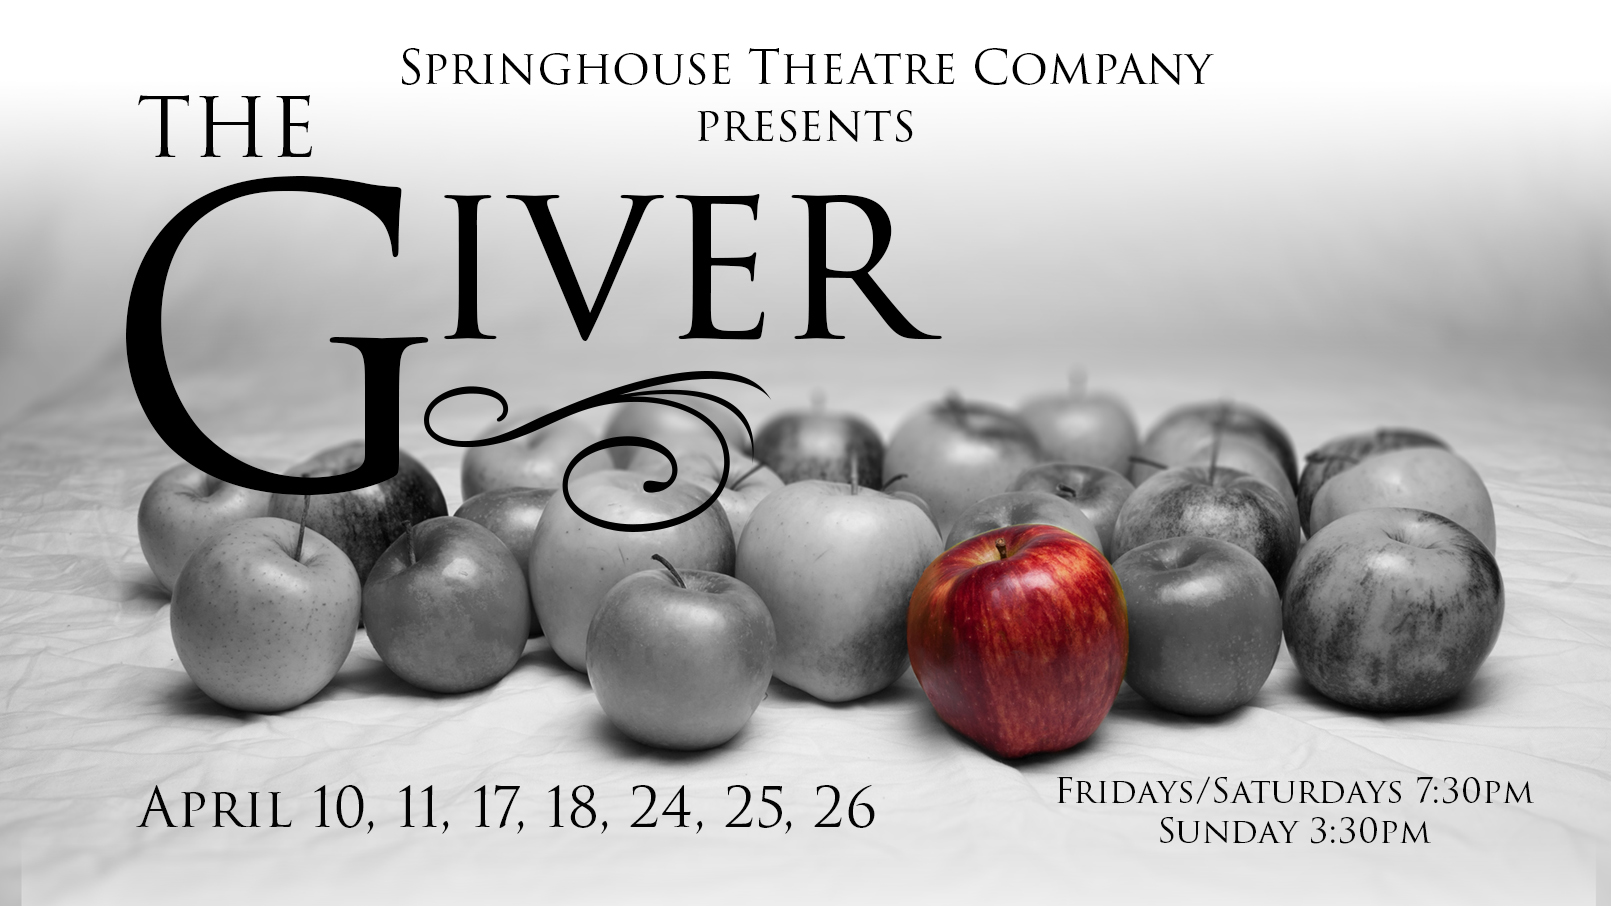 The Giver Springhouse Theatre